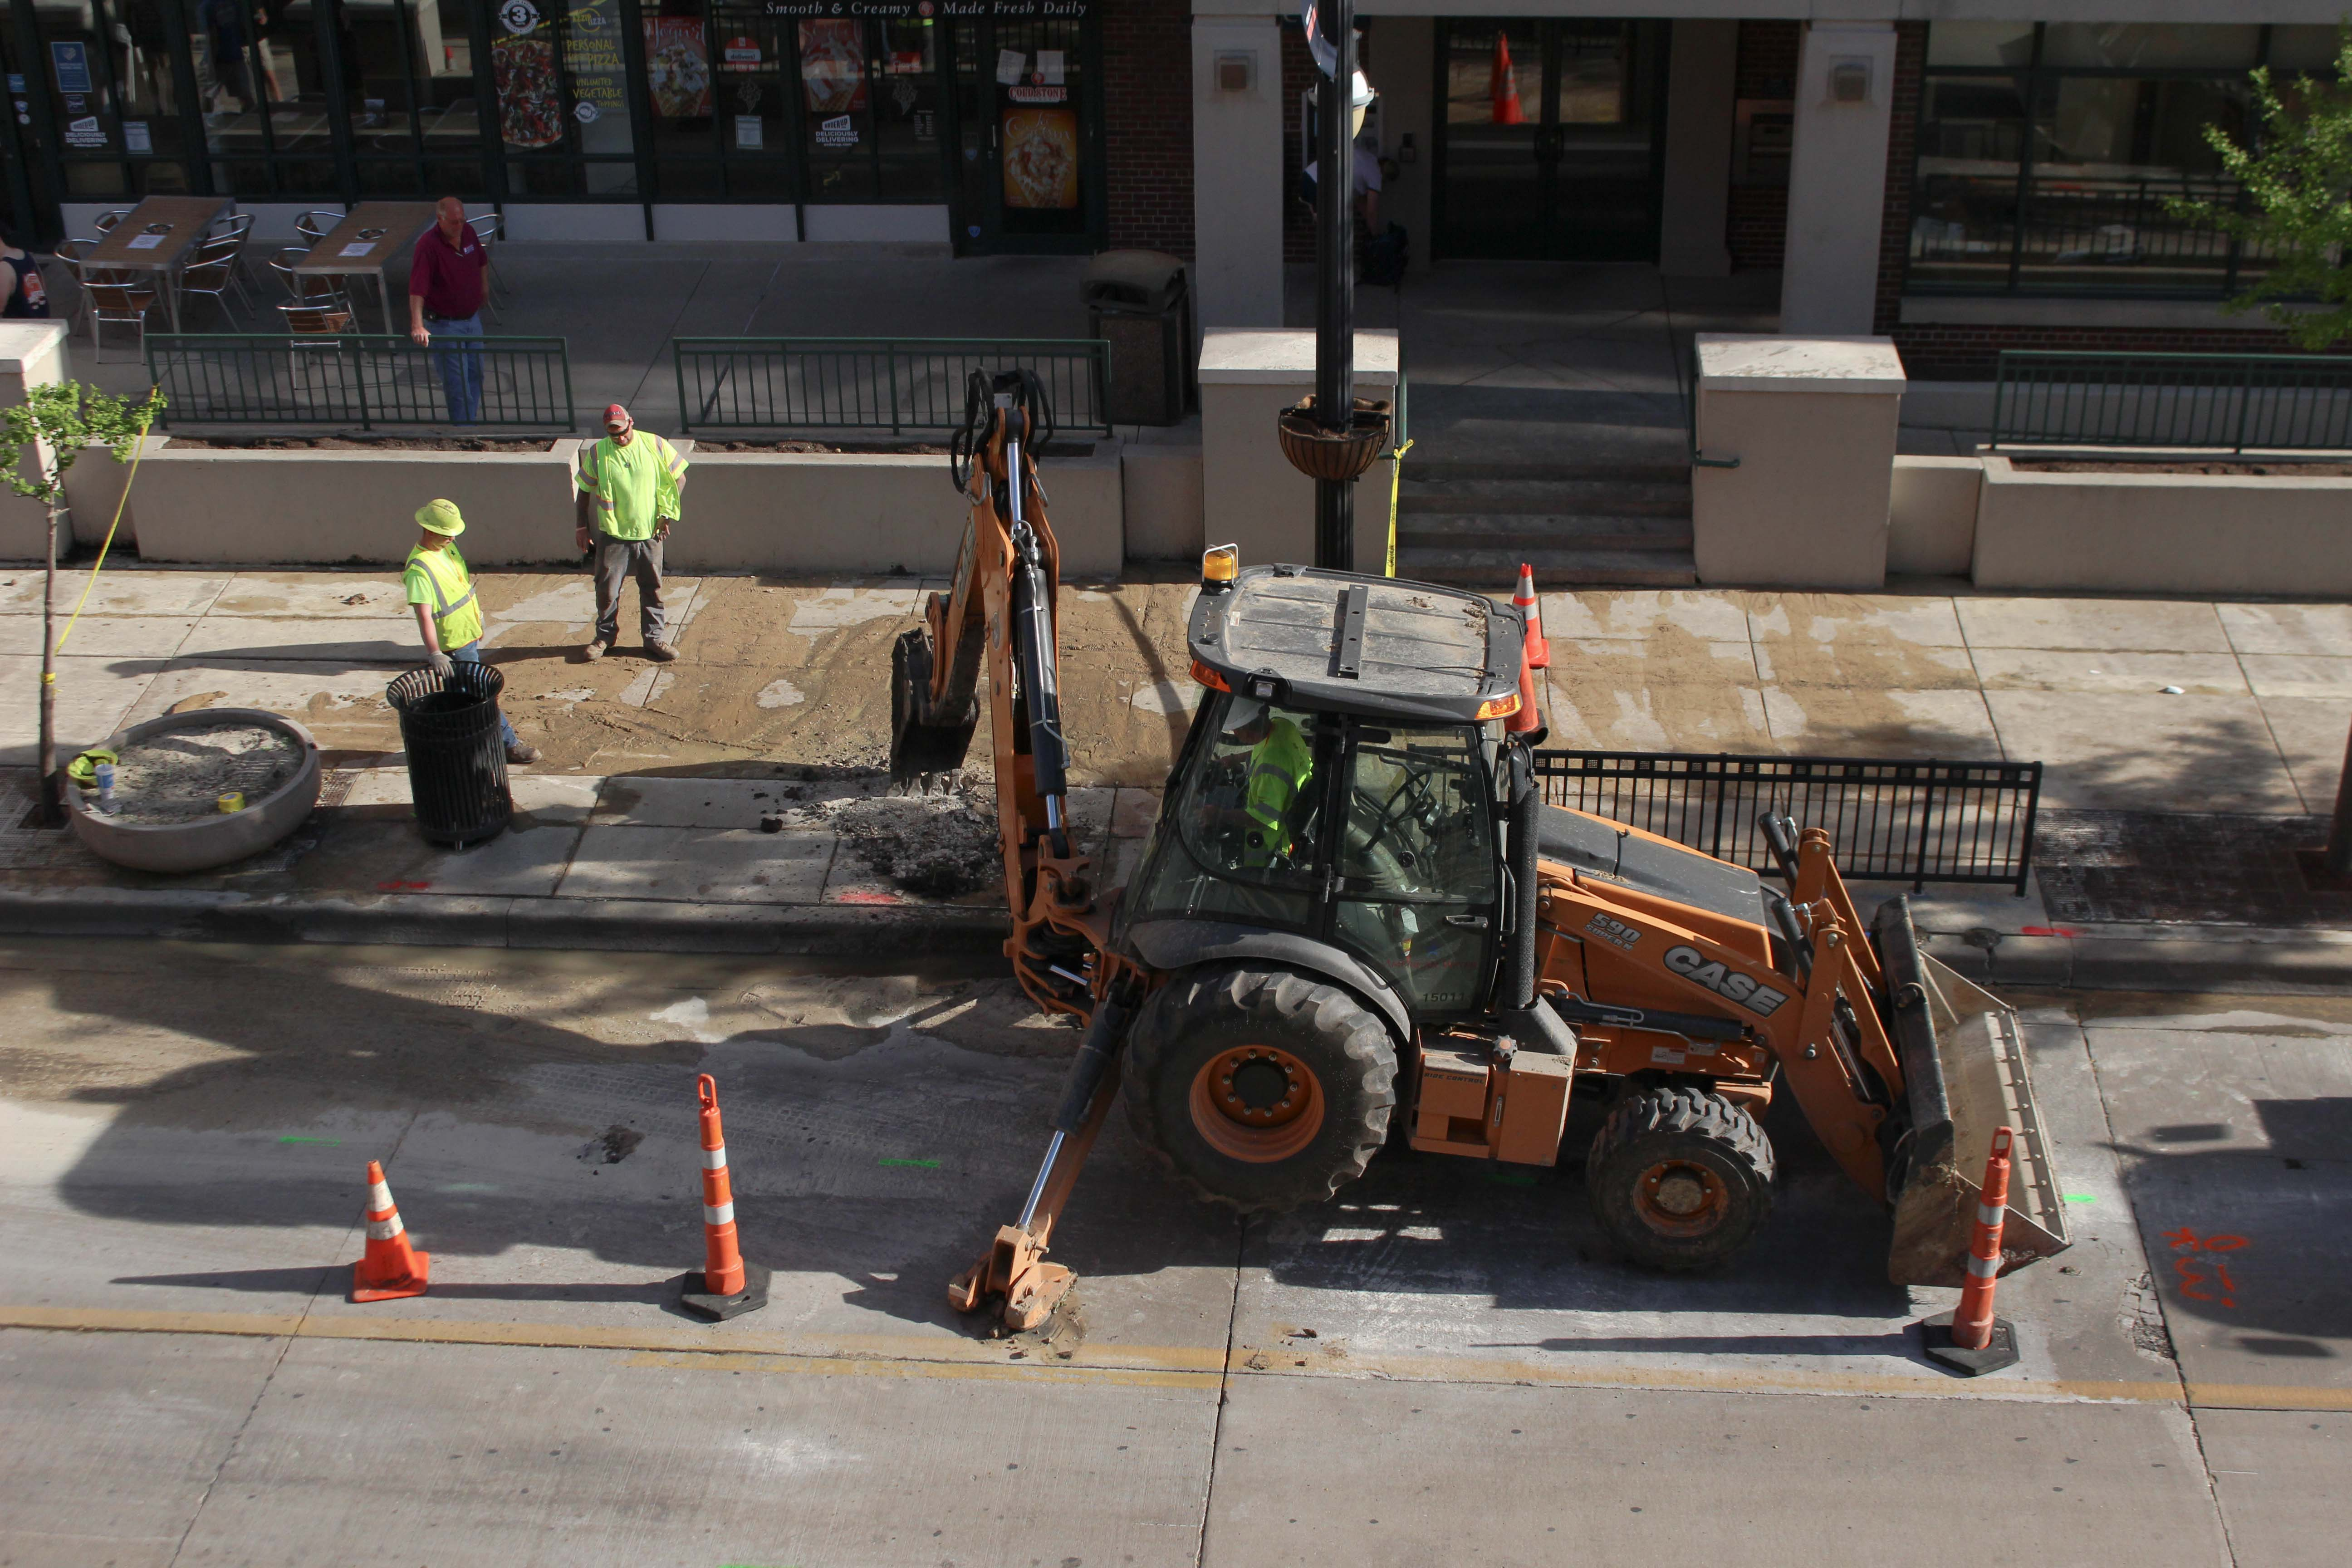 Construction workers fix a potential underground water line that broke  in front of Cold Stone Creamery on Green Street on Monday.